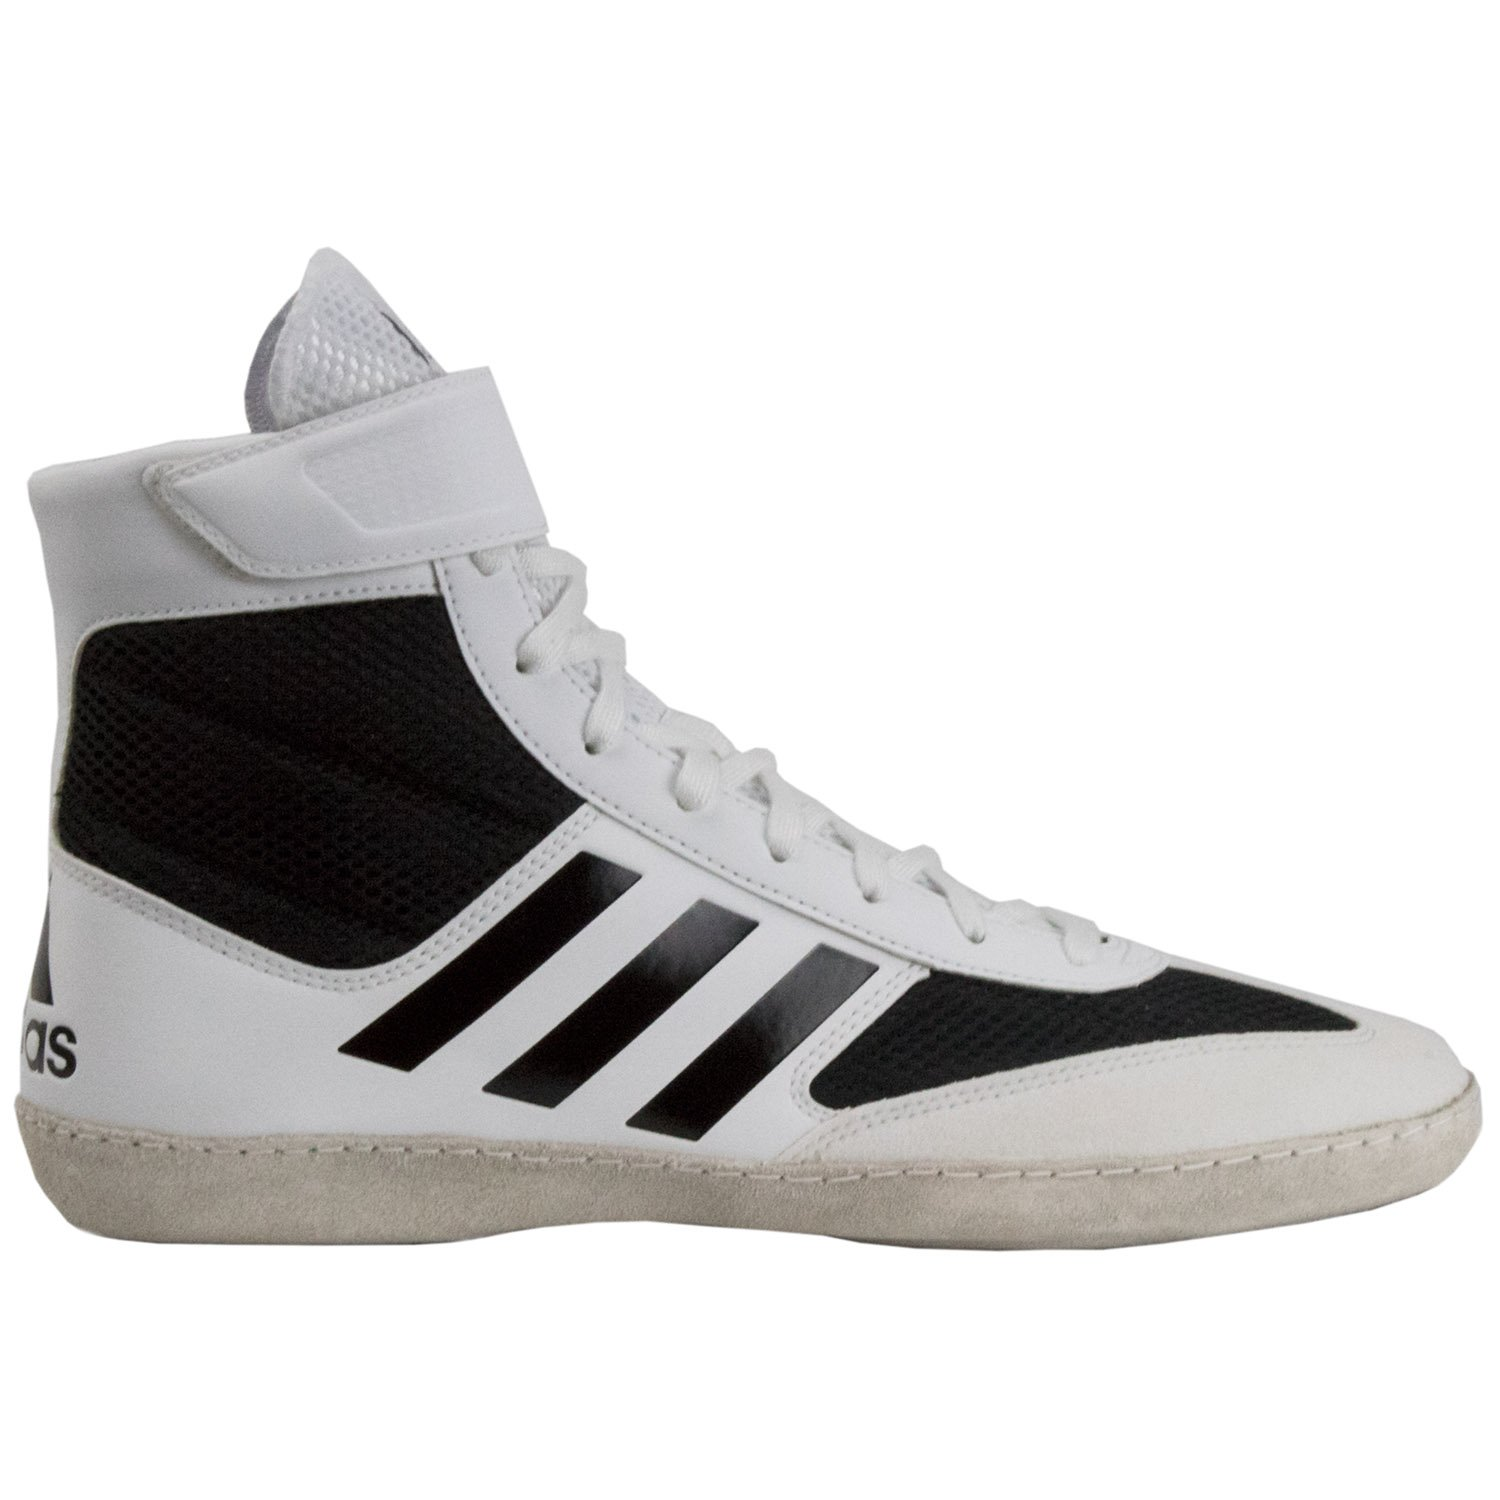 new product 7e890 c5d5b Galleon - Adidas Combat Speed 5 Men s Wrestling Shoes, White Black, Size 9